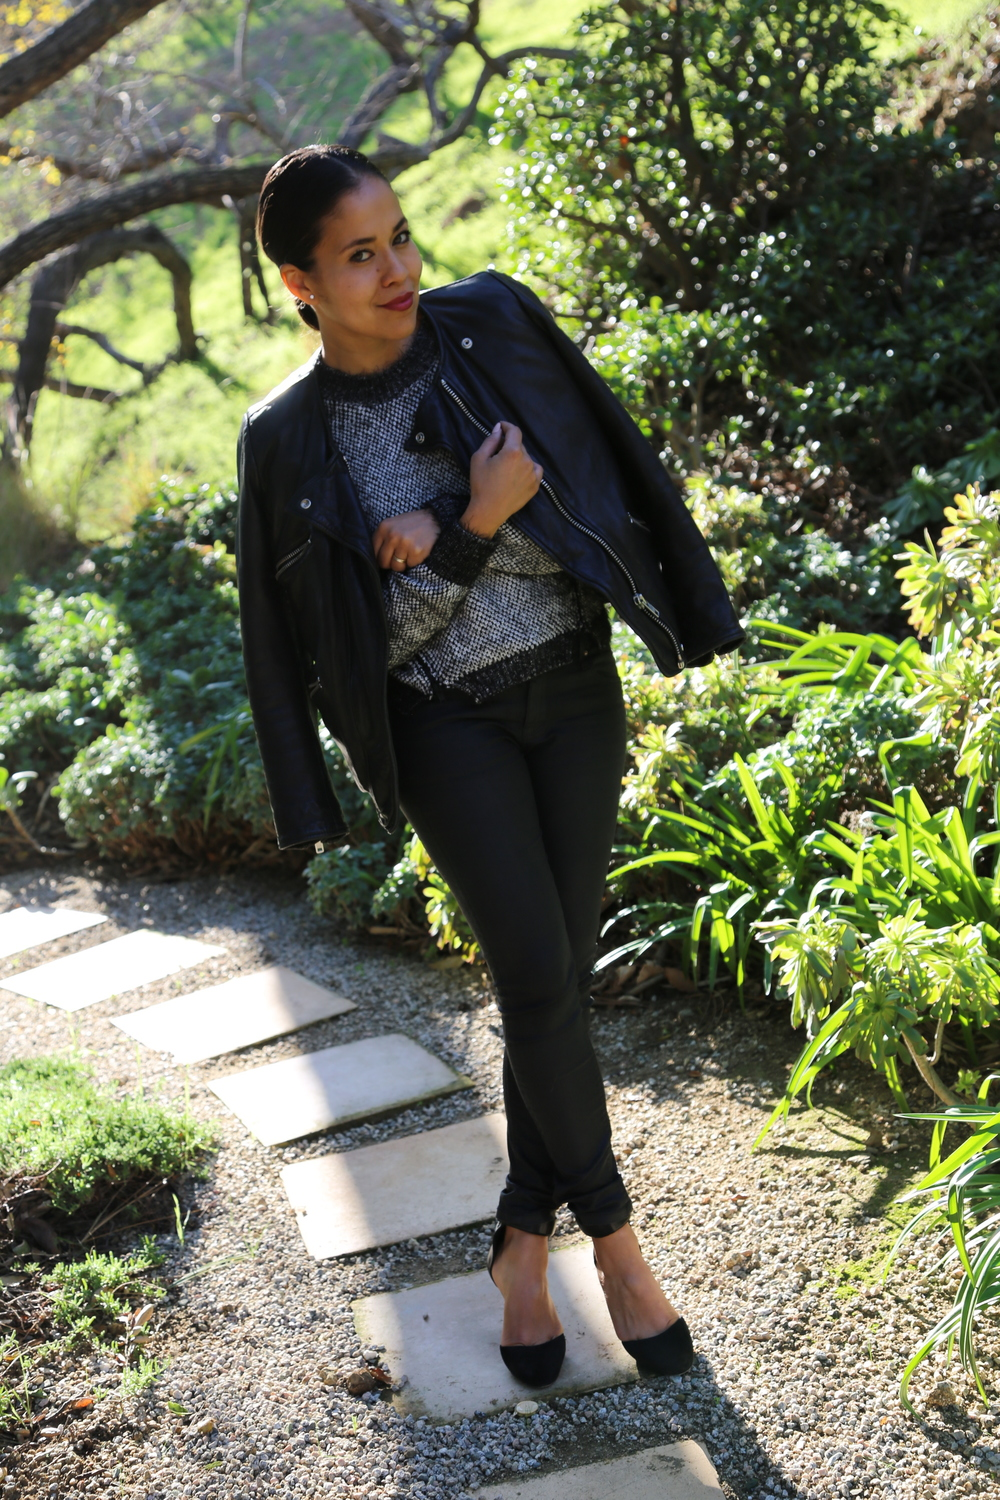 JONATHAN-SIMKHAI-SWEATER-TEXTURE-ISABEL-MARANT-WEDGE-HEELS-MOTO-JACKET-BLACK-ZARA-JEANS-LOS-ANGELES-VANESSA-BELETIC.JPG